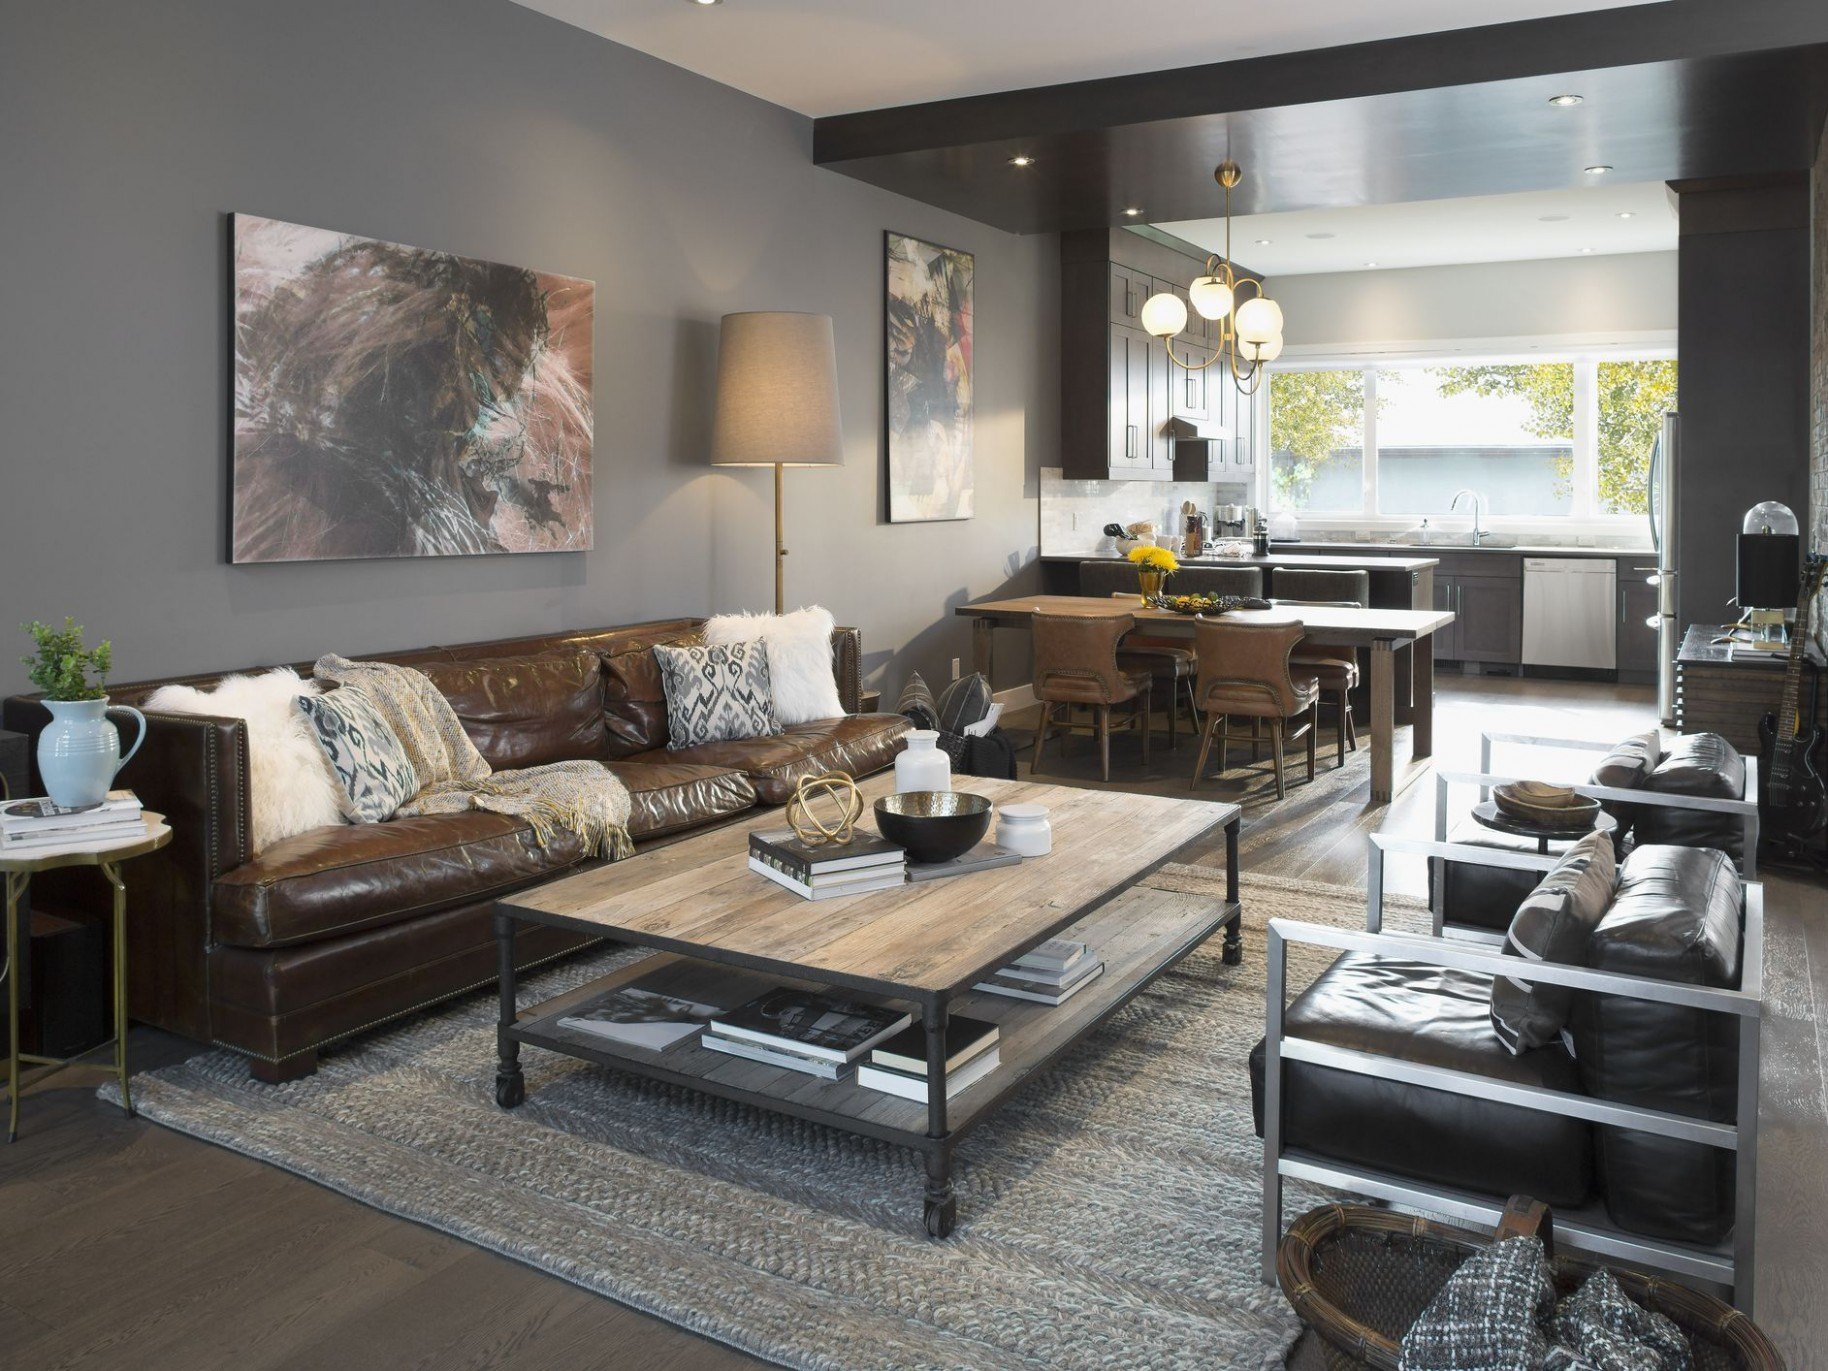 12 Elements of Modern Masculine Room Decor - Apartment Decor Ideas For Guys